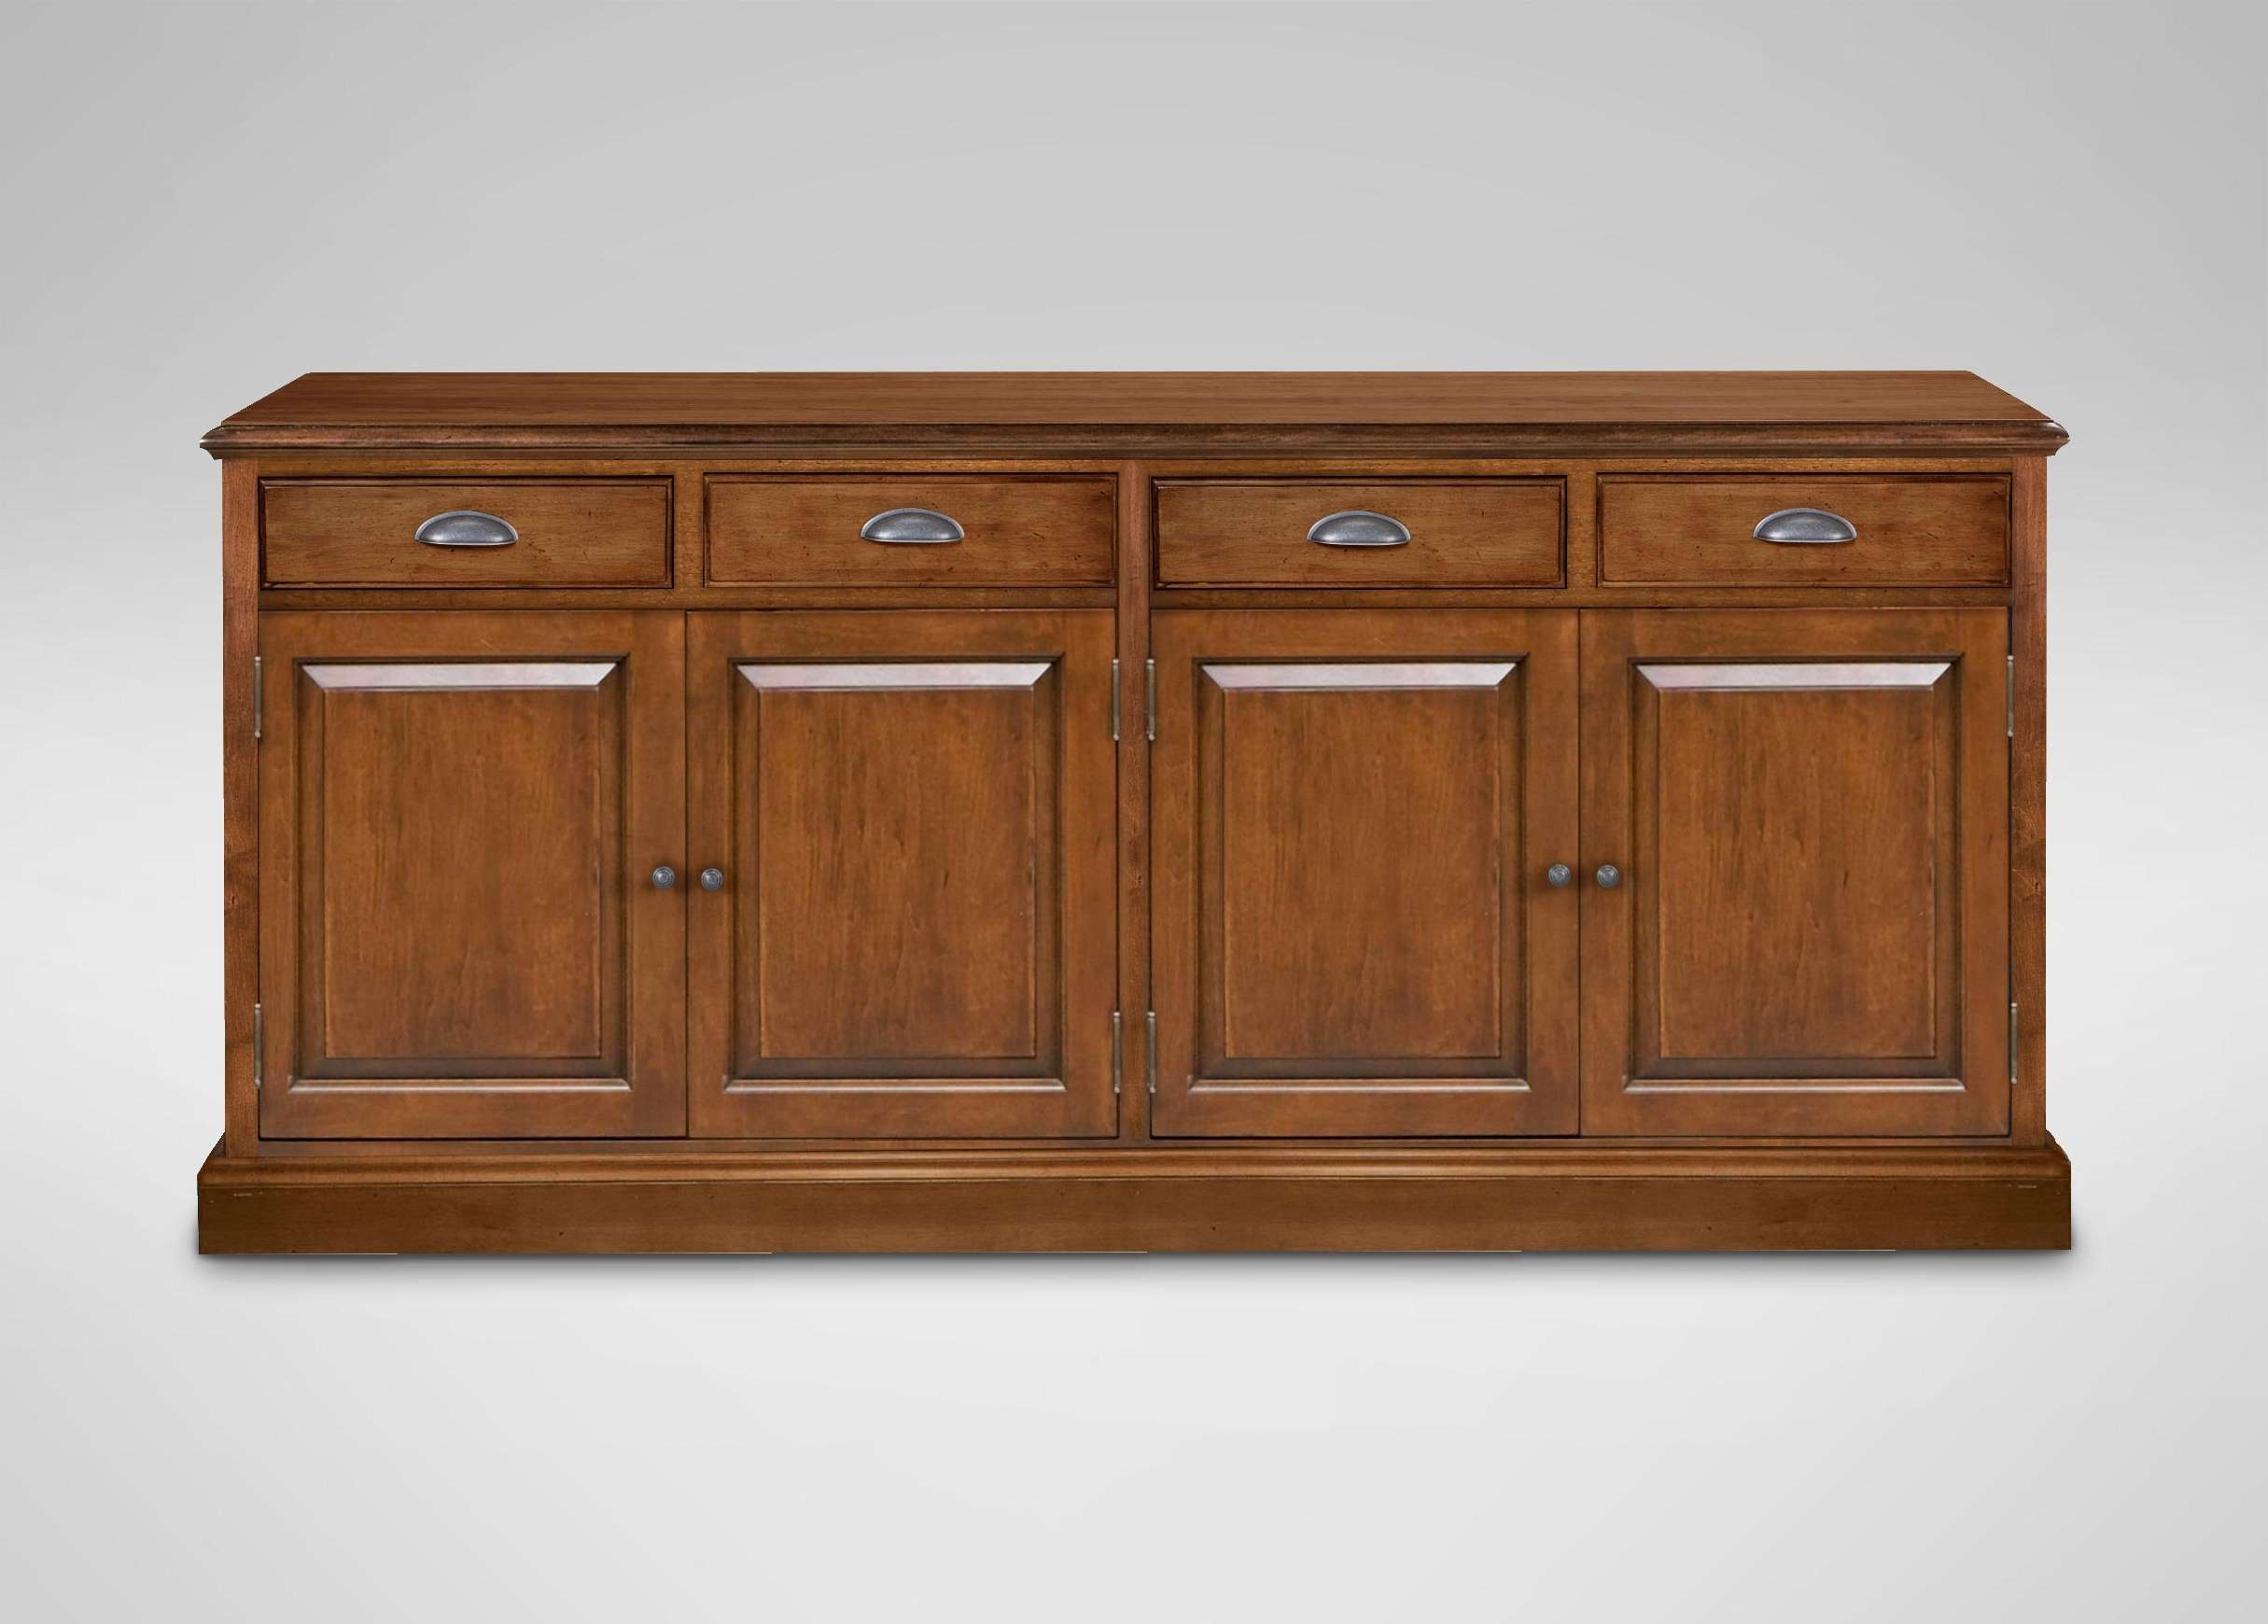 Shop Buffet Storage, Sideboards & Servers | Ethan Allen For Red Sideboards Buffets (View 20 of 20)